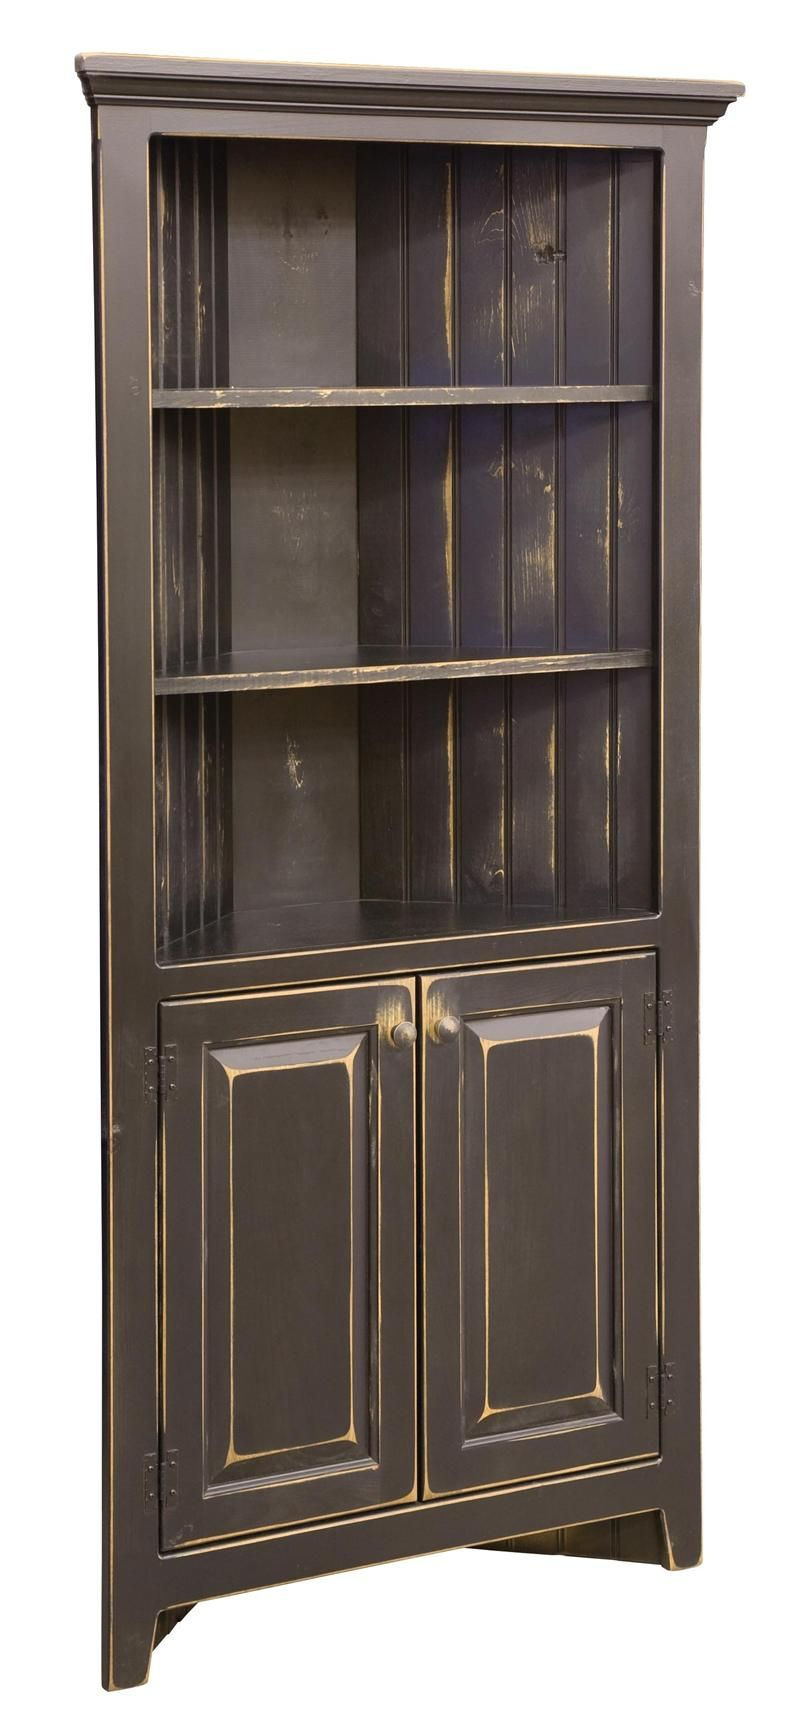 Amish 35 Inch Corner Cabinet  sc 1 st  Pinterest & Amish 35 Inch Corner Cabinet | Furniture | Pinterest | Corner Amish ...